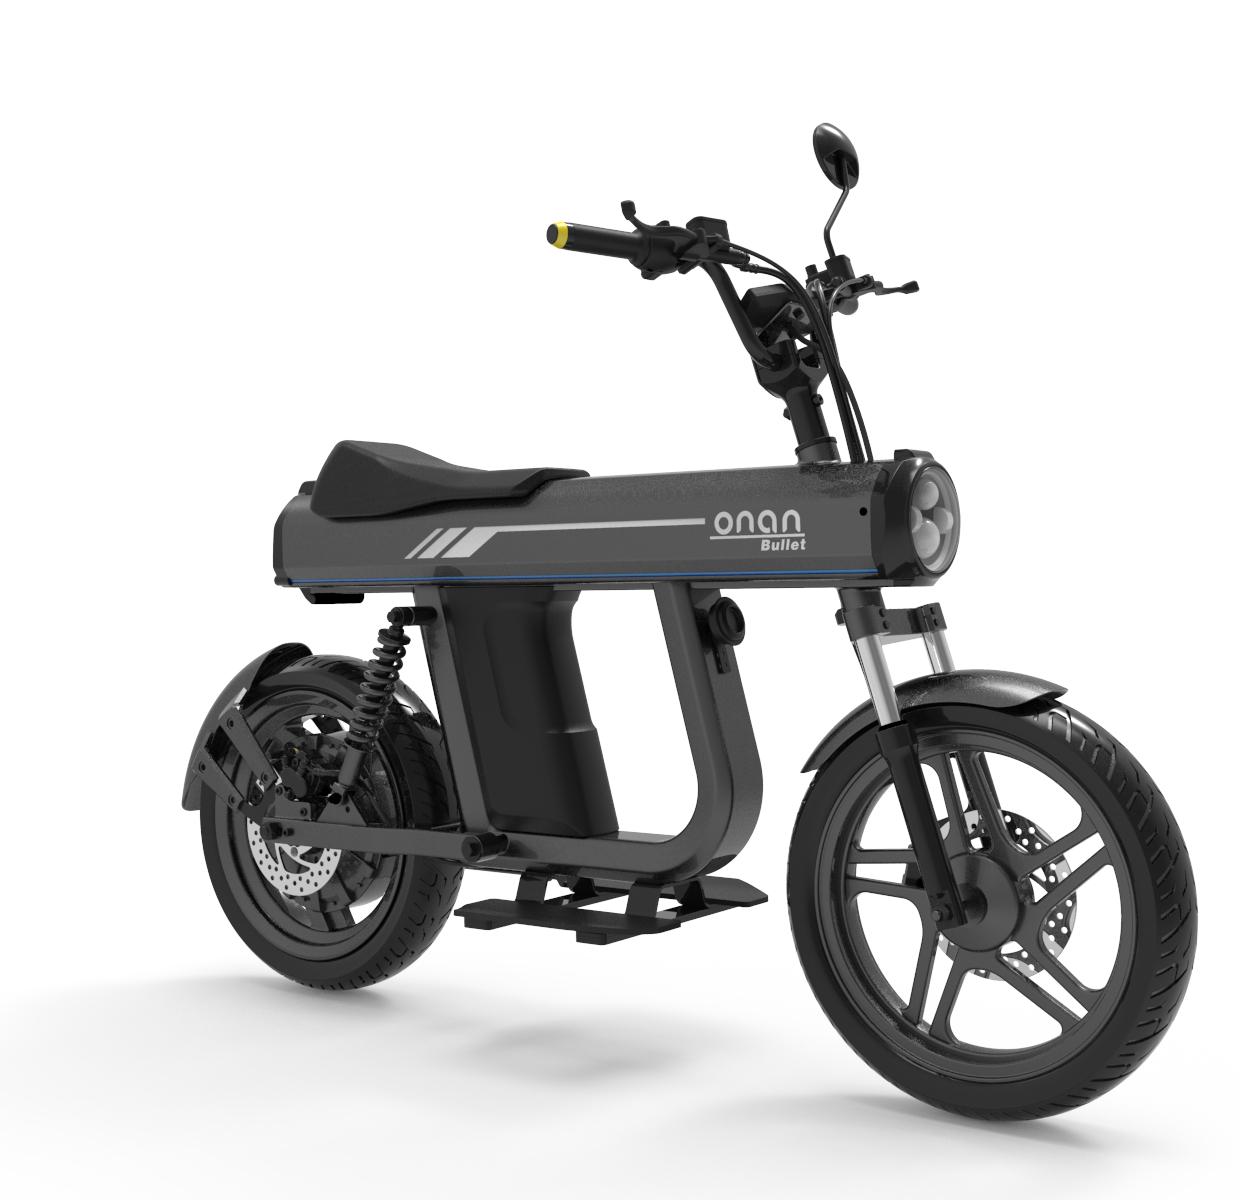 ONAN Newest Bullet Automatic convenient Electric Motorcycle 2000W  For Sale